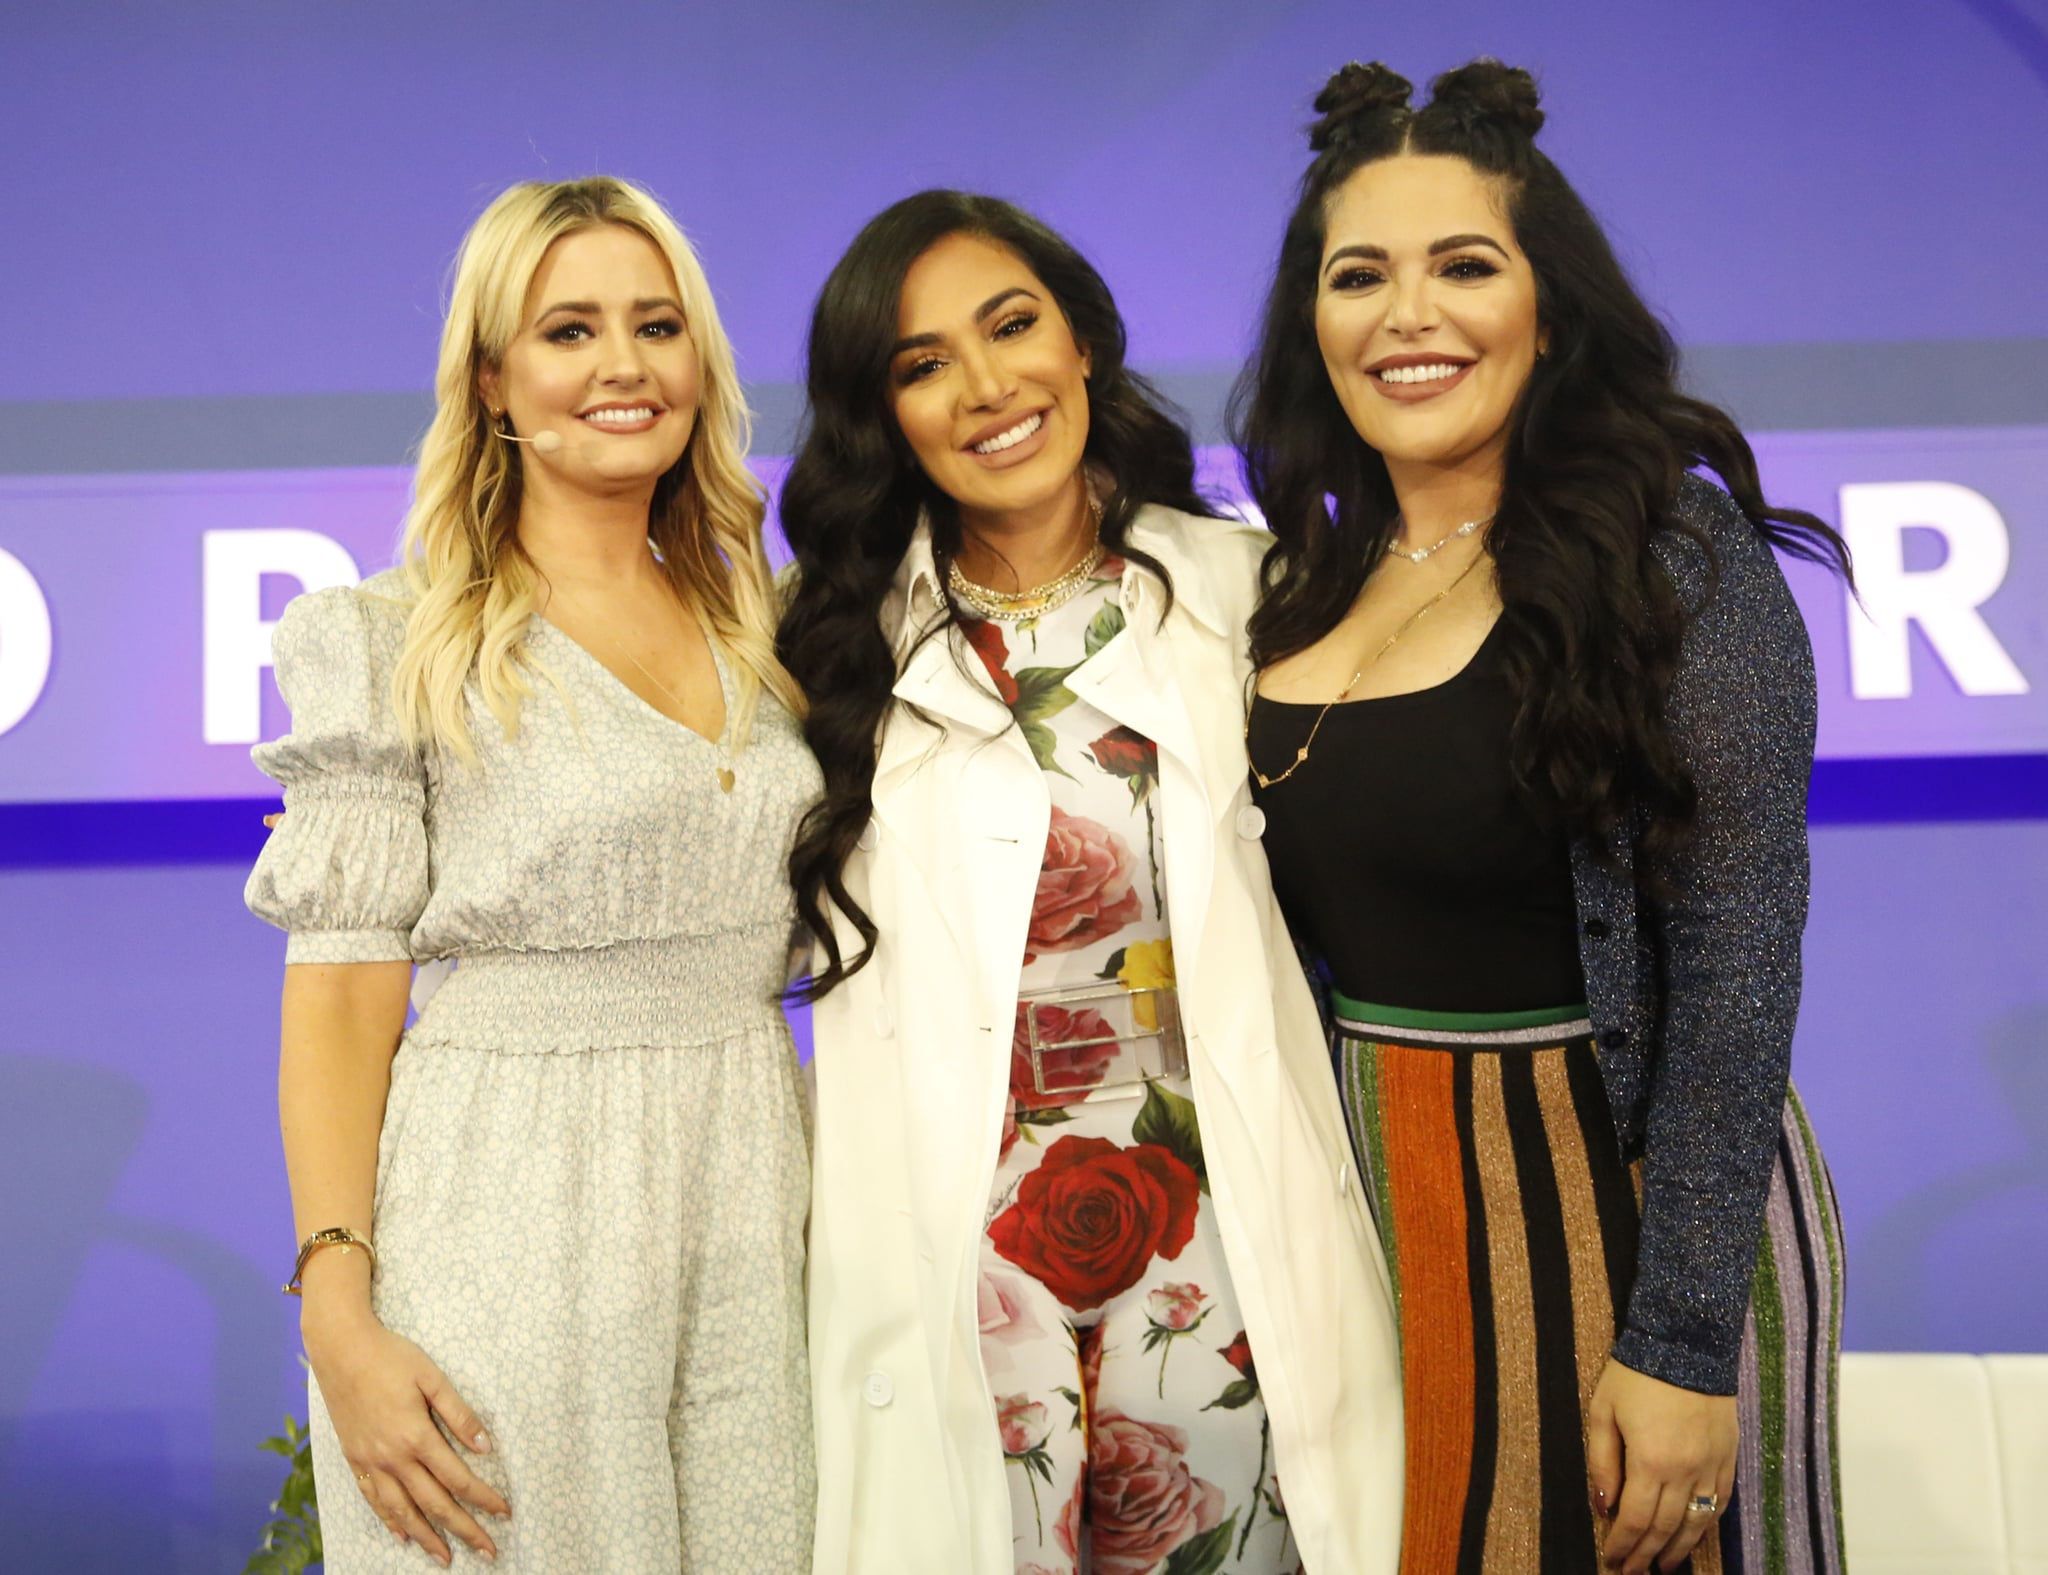 Pictured: Kirbie Johnson, Huda Kattan, and Mona Kattan